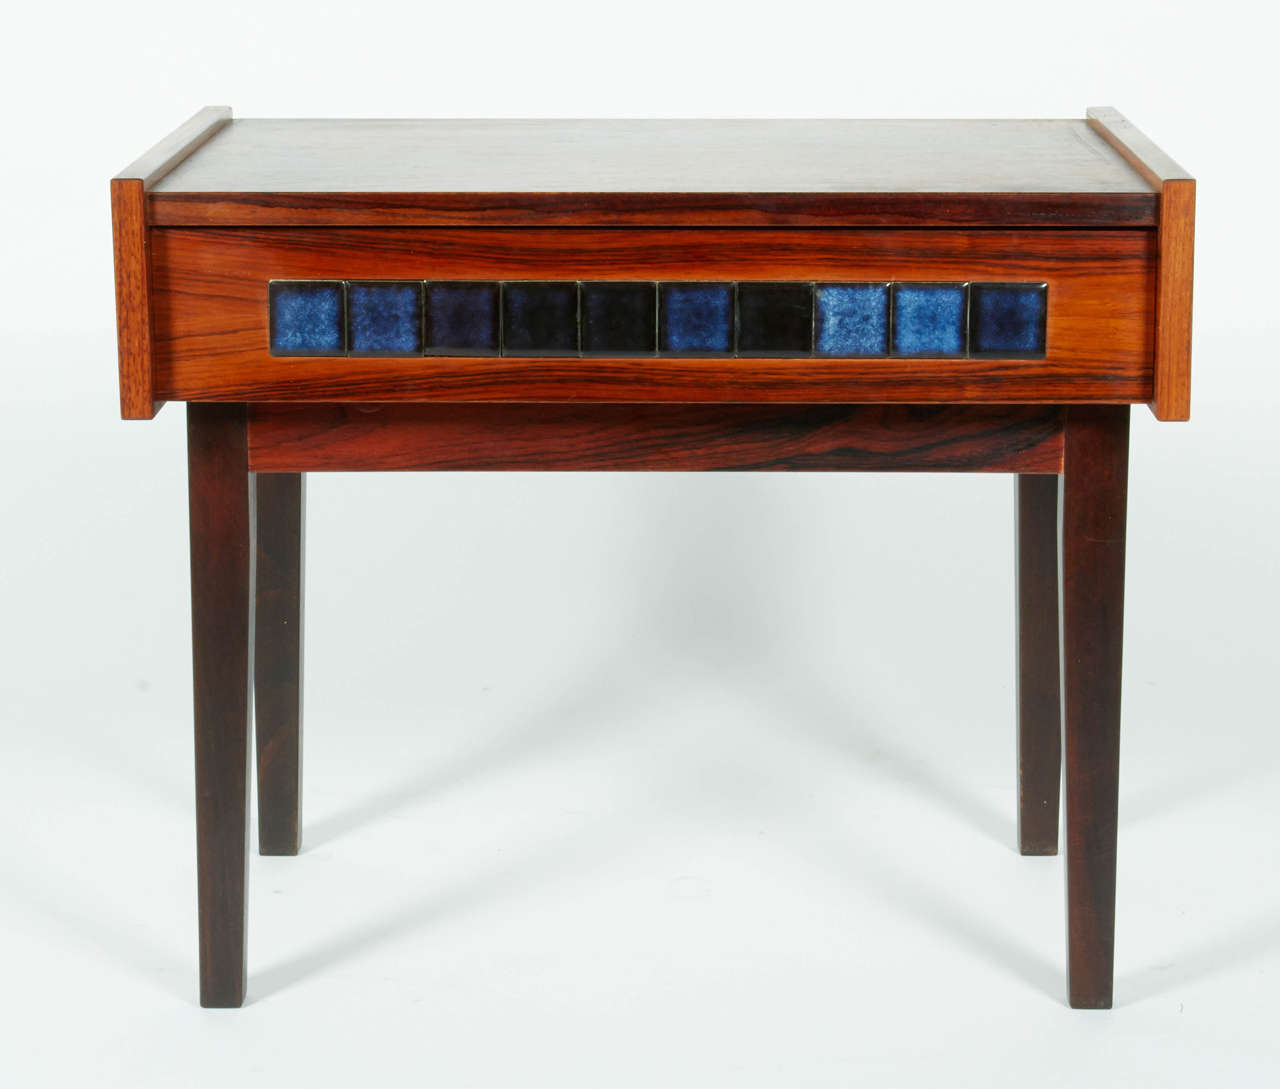 An attractive side table in rosewood featuring square tiles in array of blue.